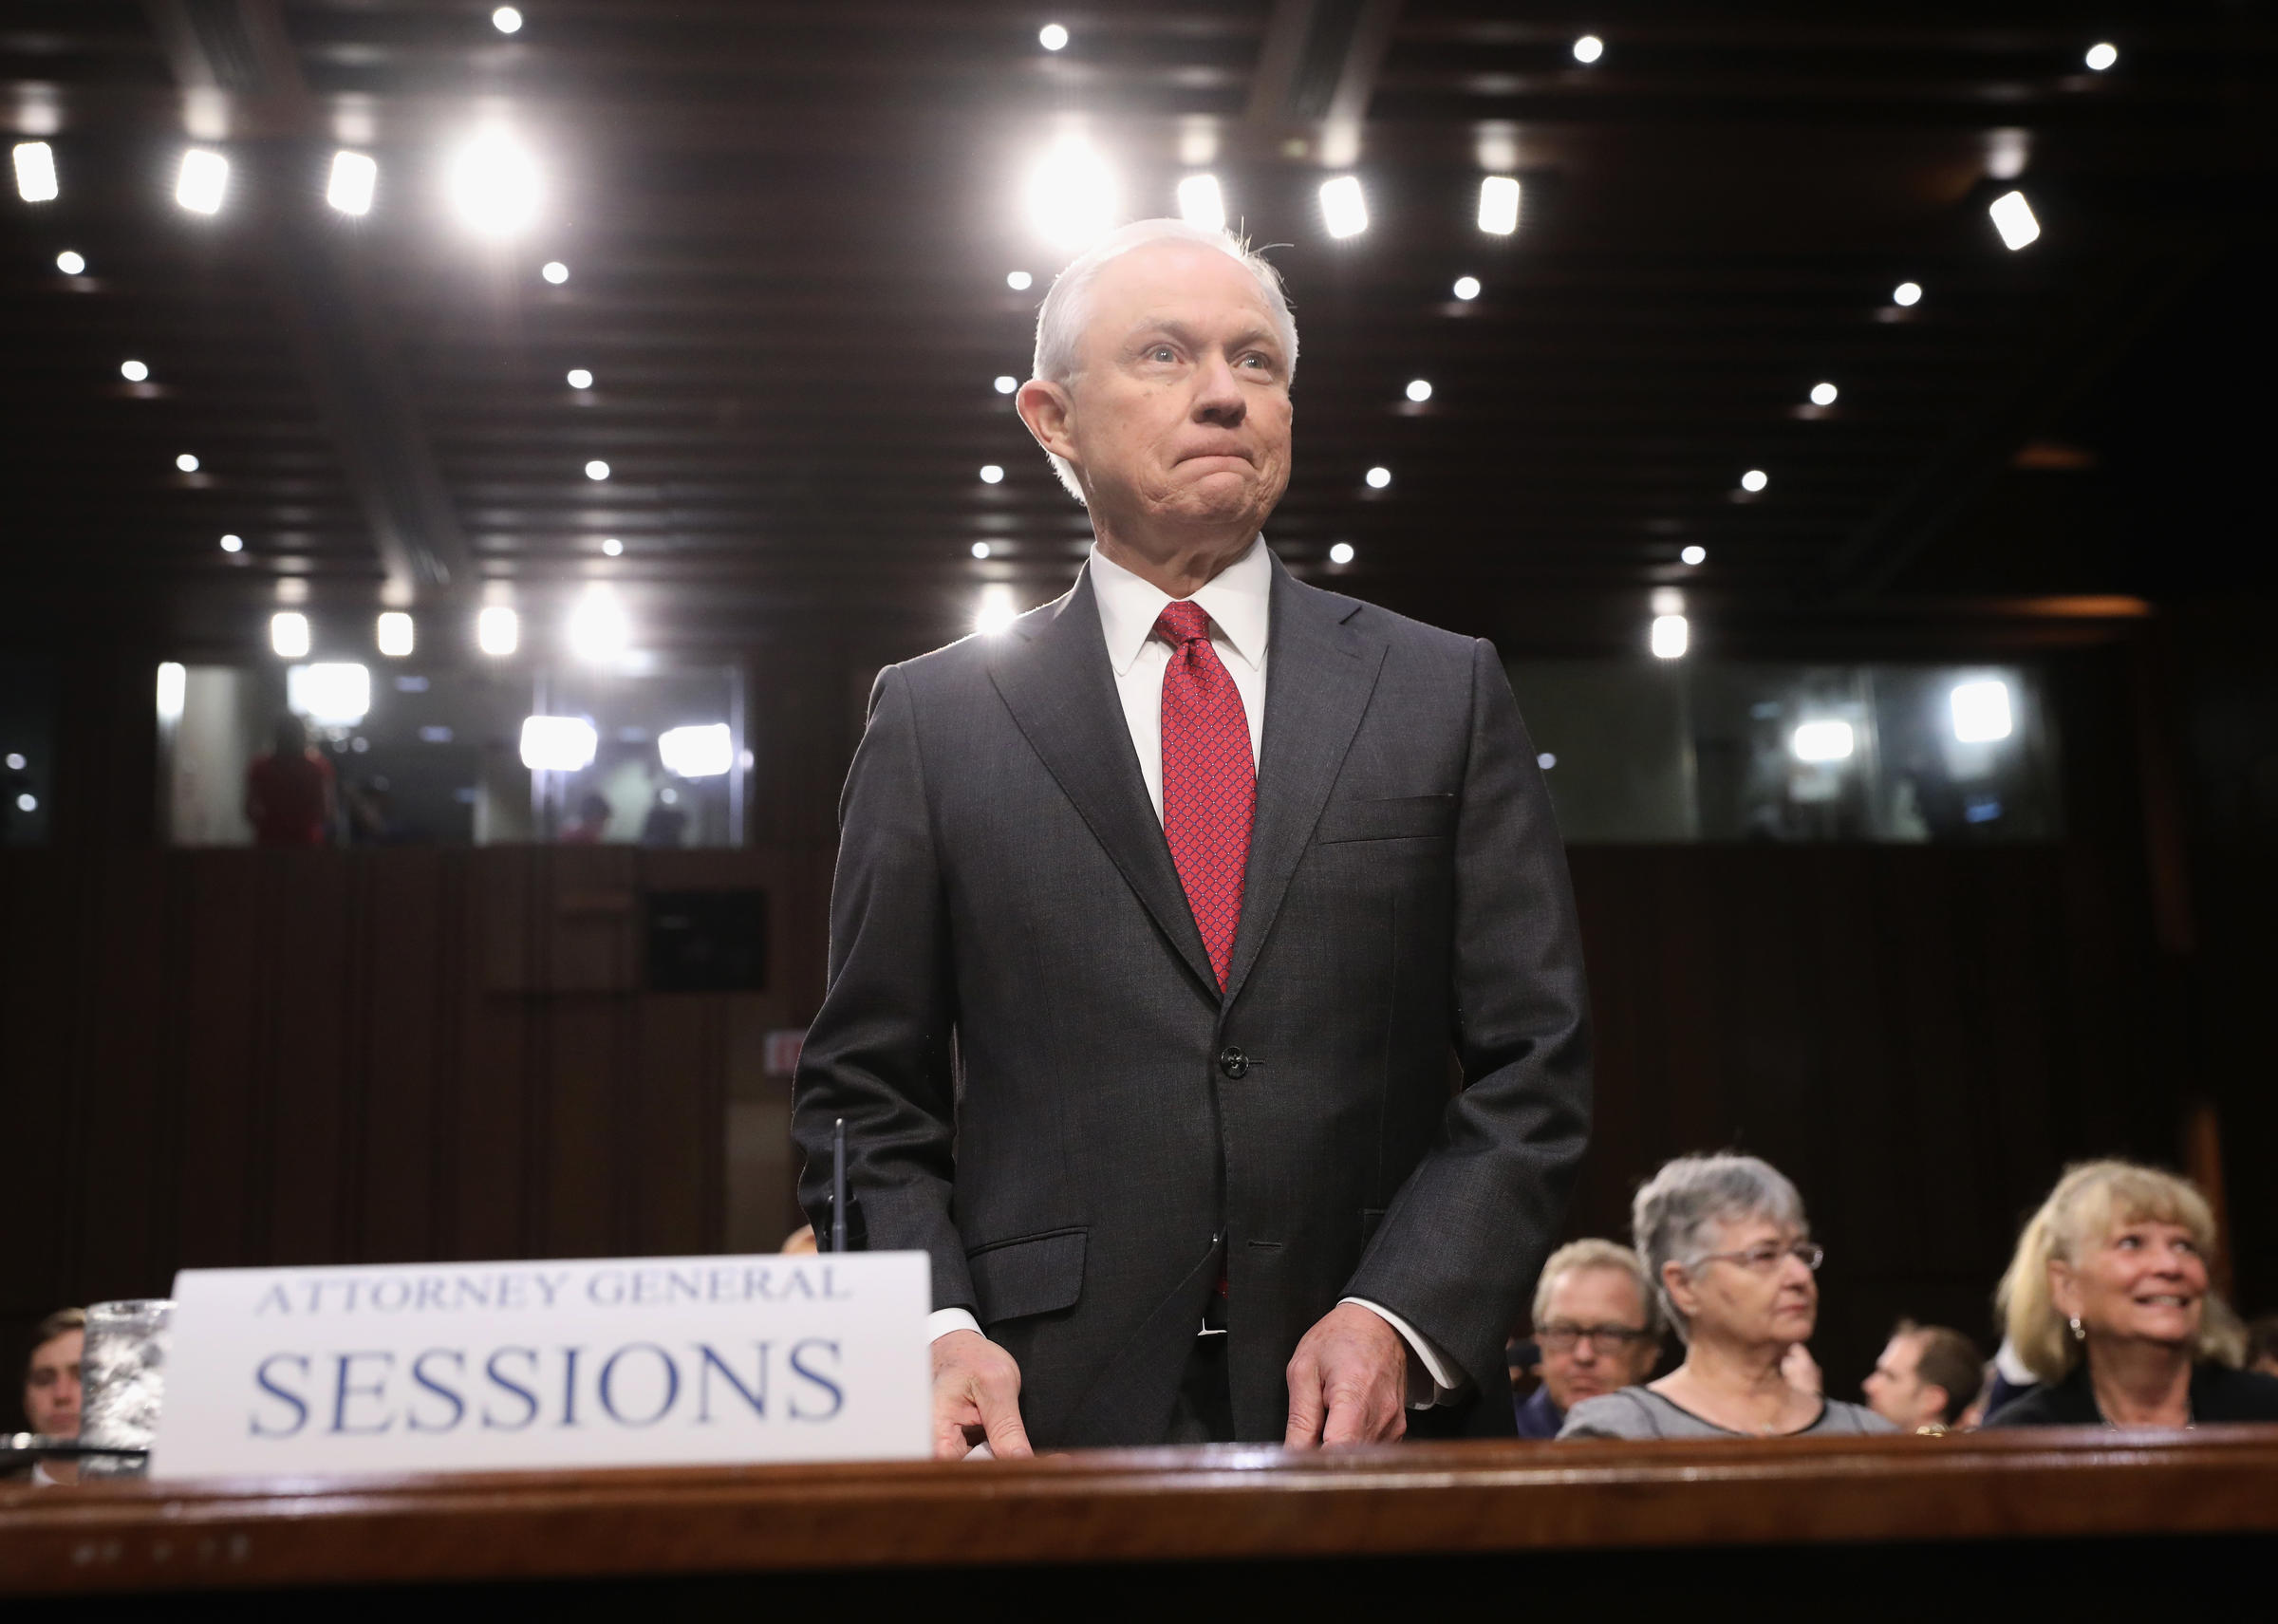 Attorney General Sessions' Opening Statement To Senate Panel, Annotated